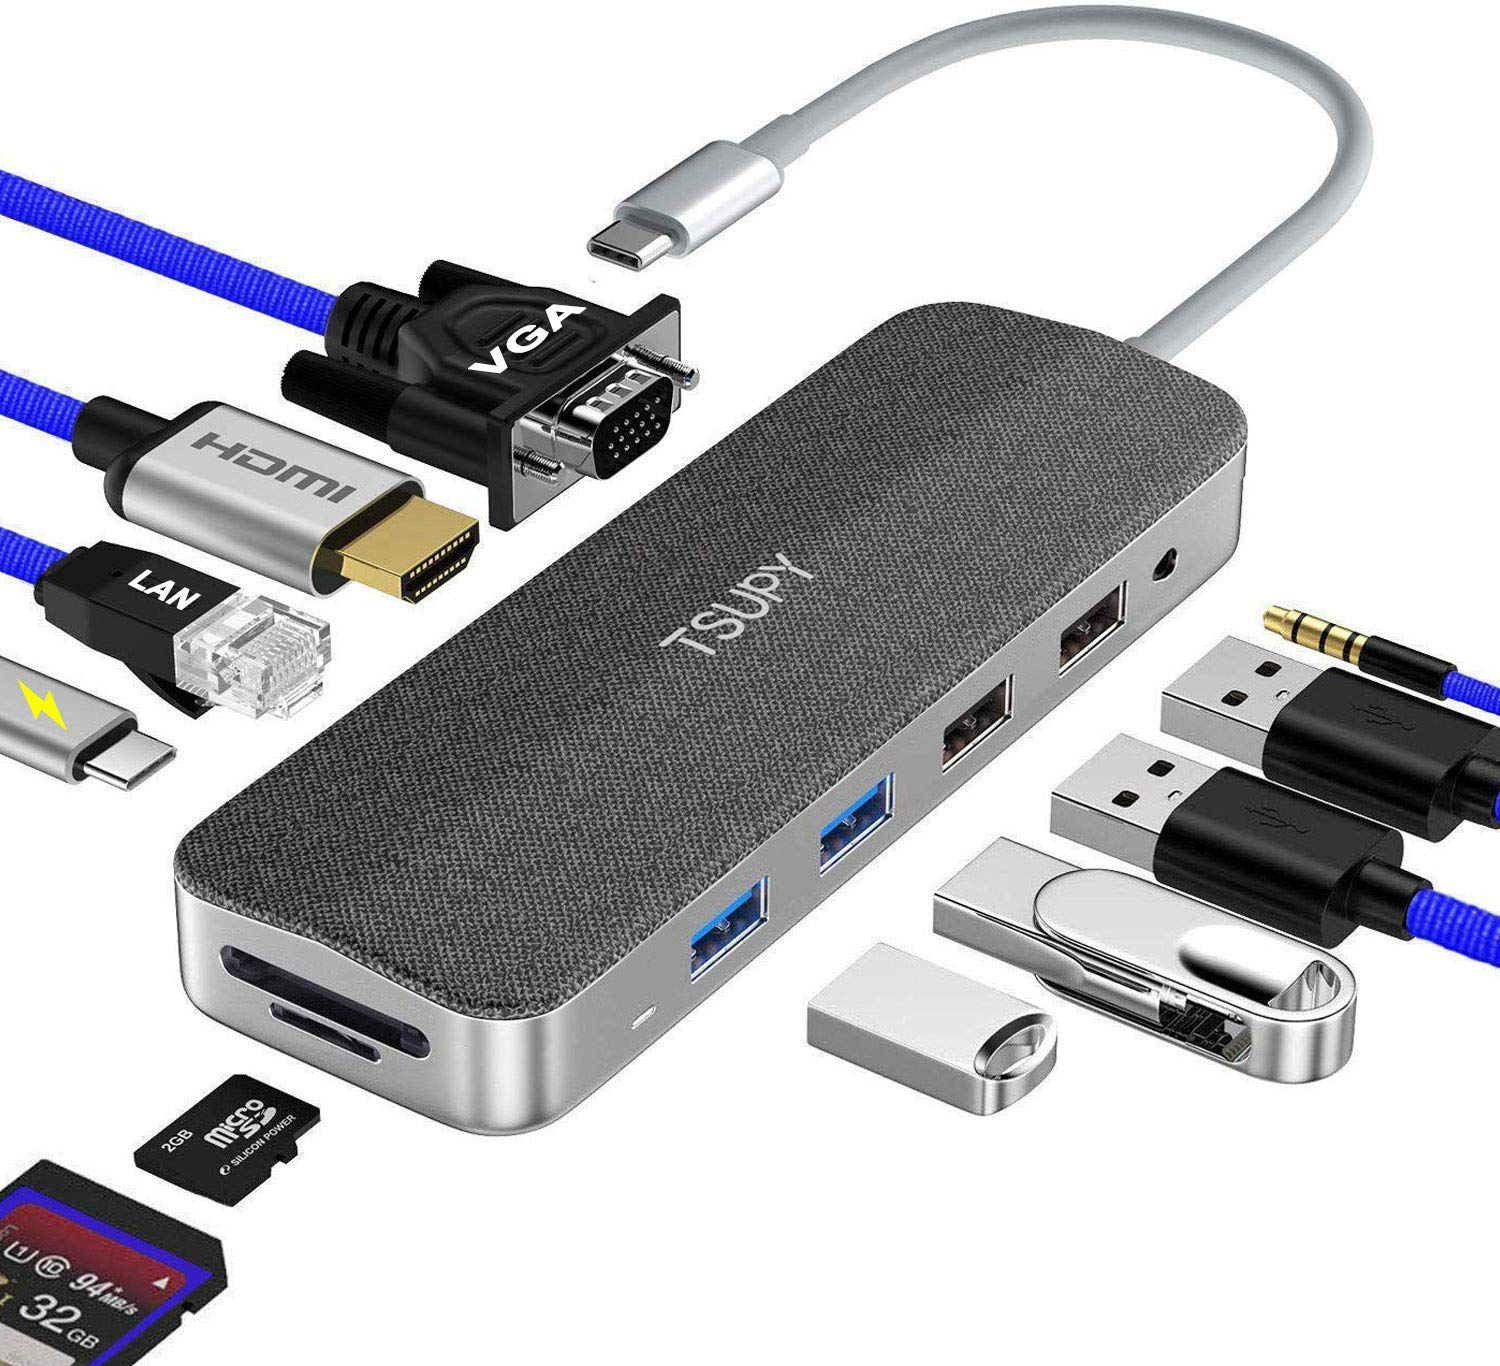 TSUPY USB C HUB, 11 in 1 Type C Adapter Hub with Gigabit Ethernet,4K HDMI,VGA, Fast Power Delivery Charging Port,3.5mm Audio,4 USB Ports and SD/TF Card Reader for MacBook Pro/Air,XPS and More